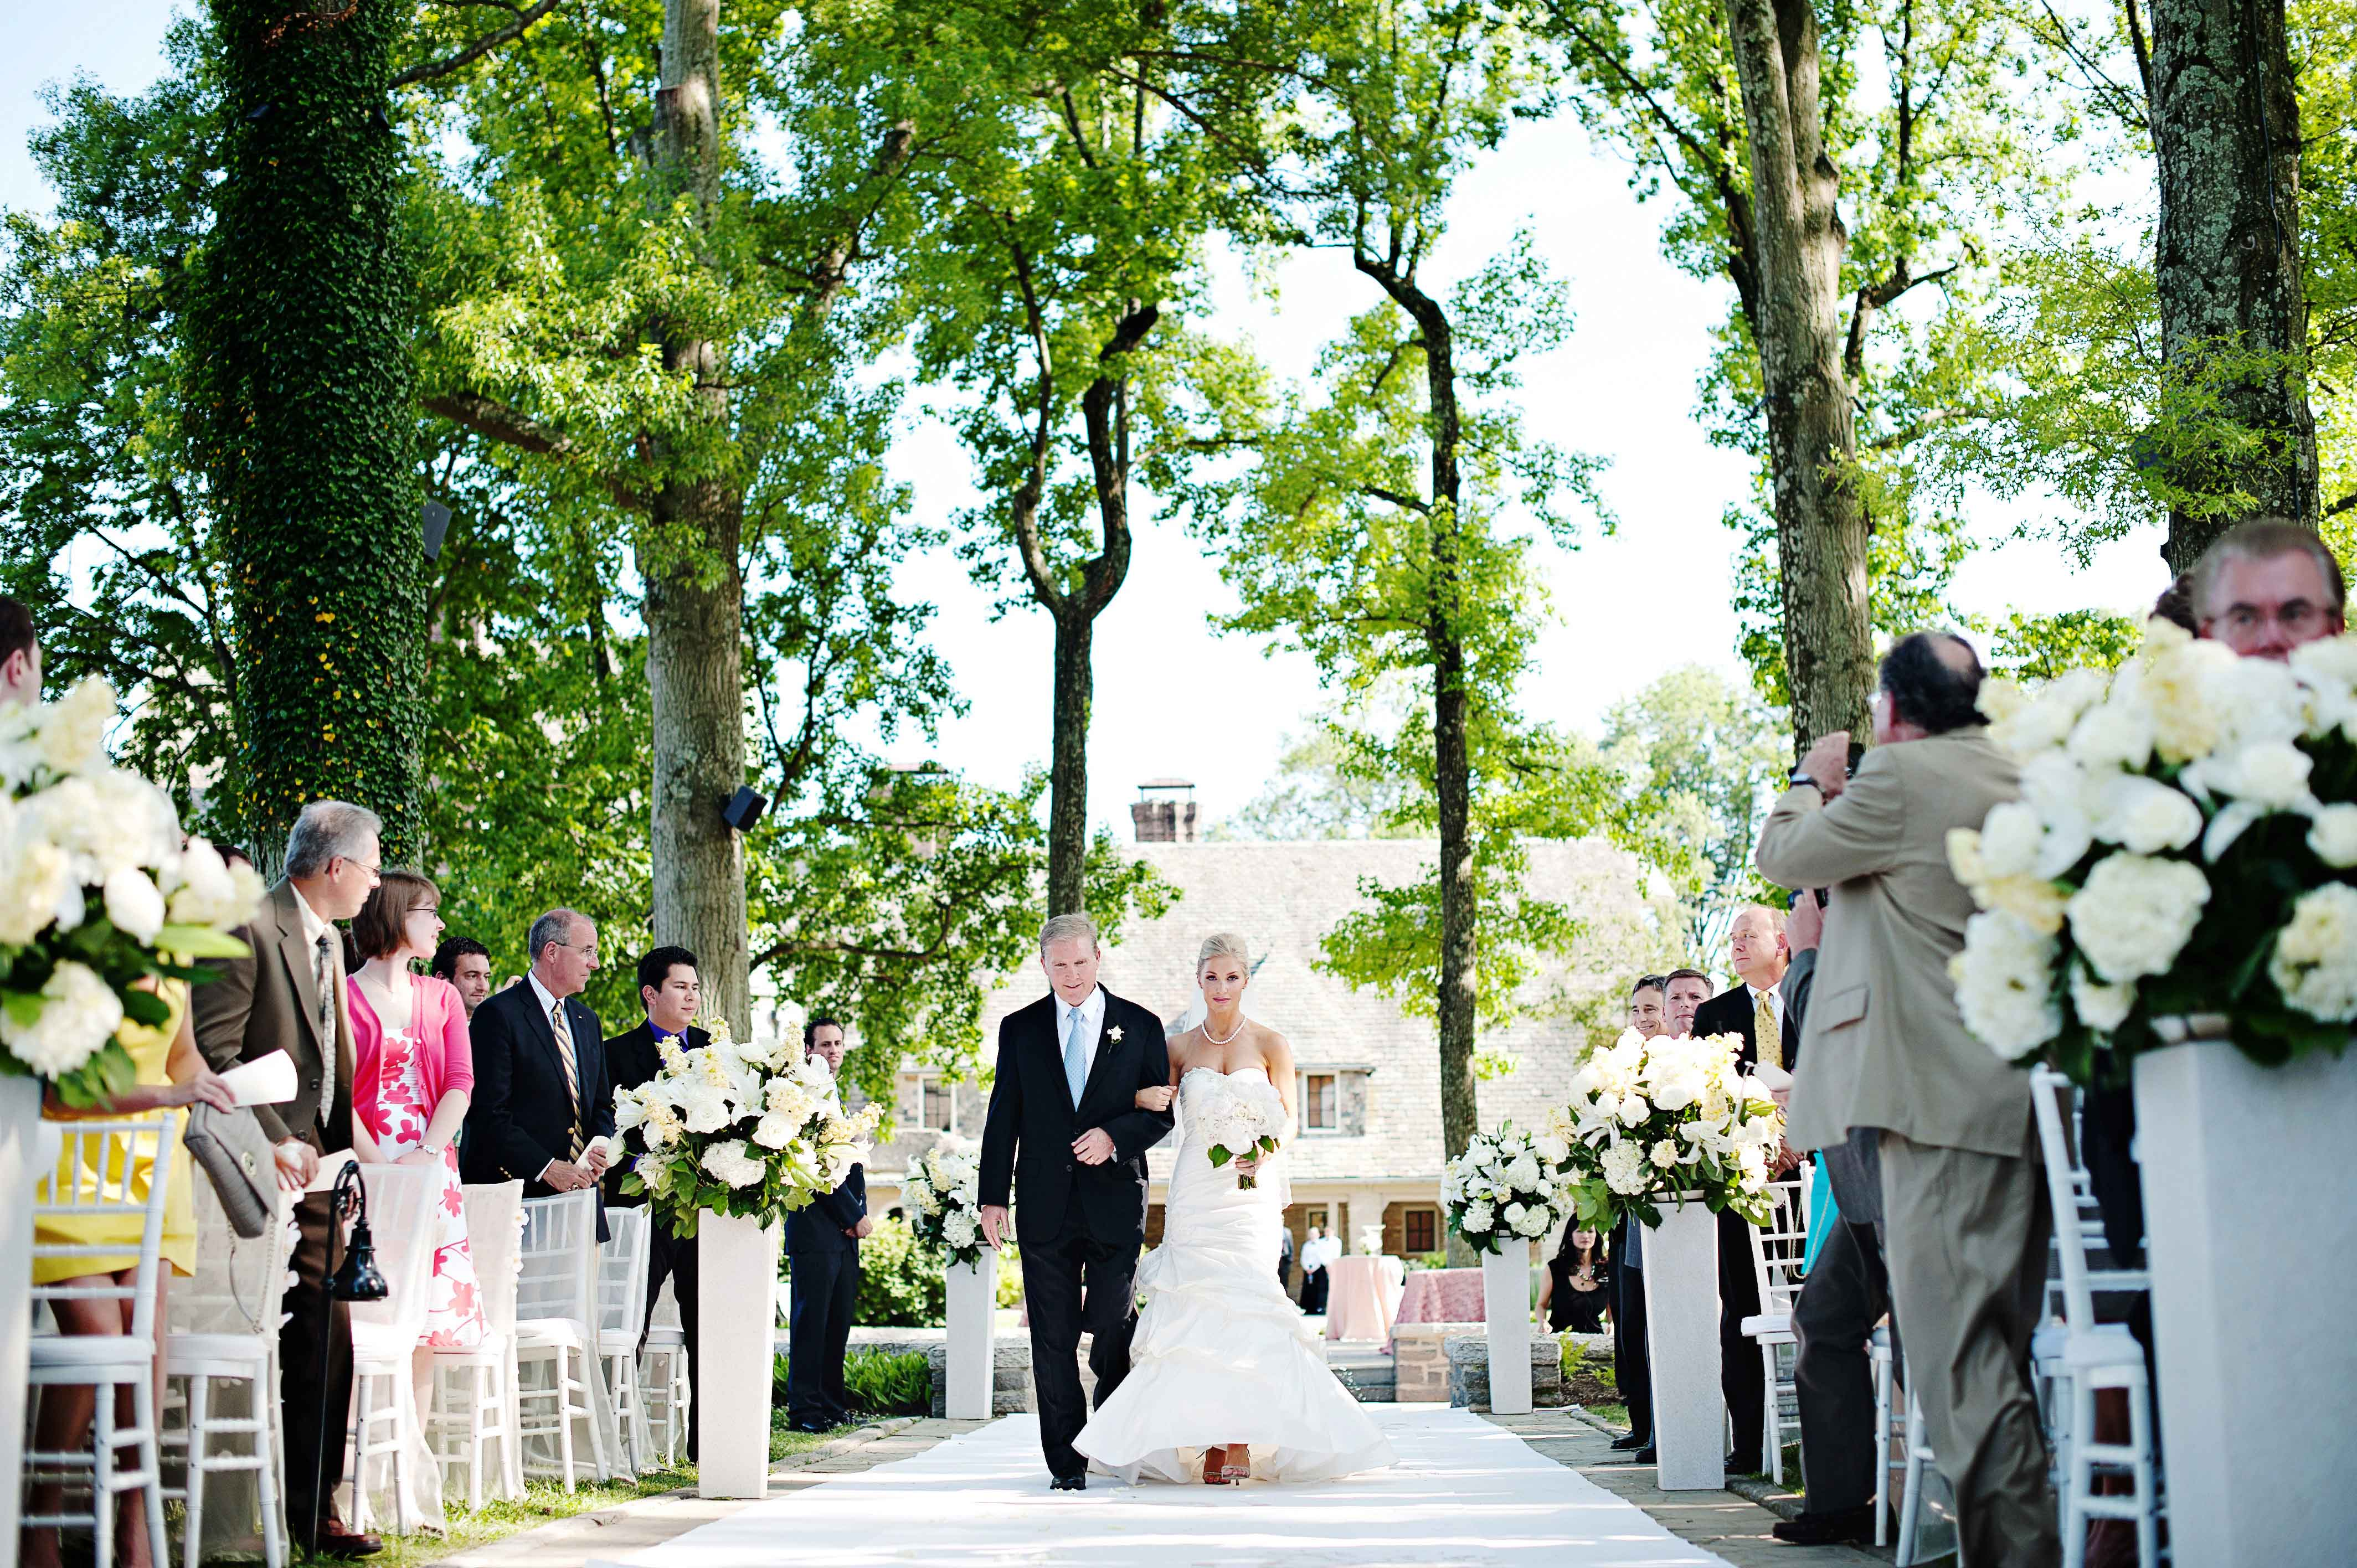 outdoor wedding ceremony timeless color palette 2019 popular real weddings